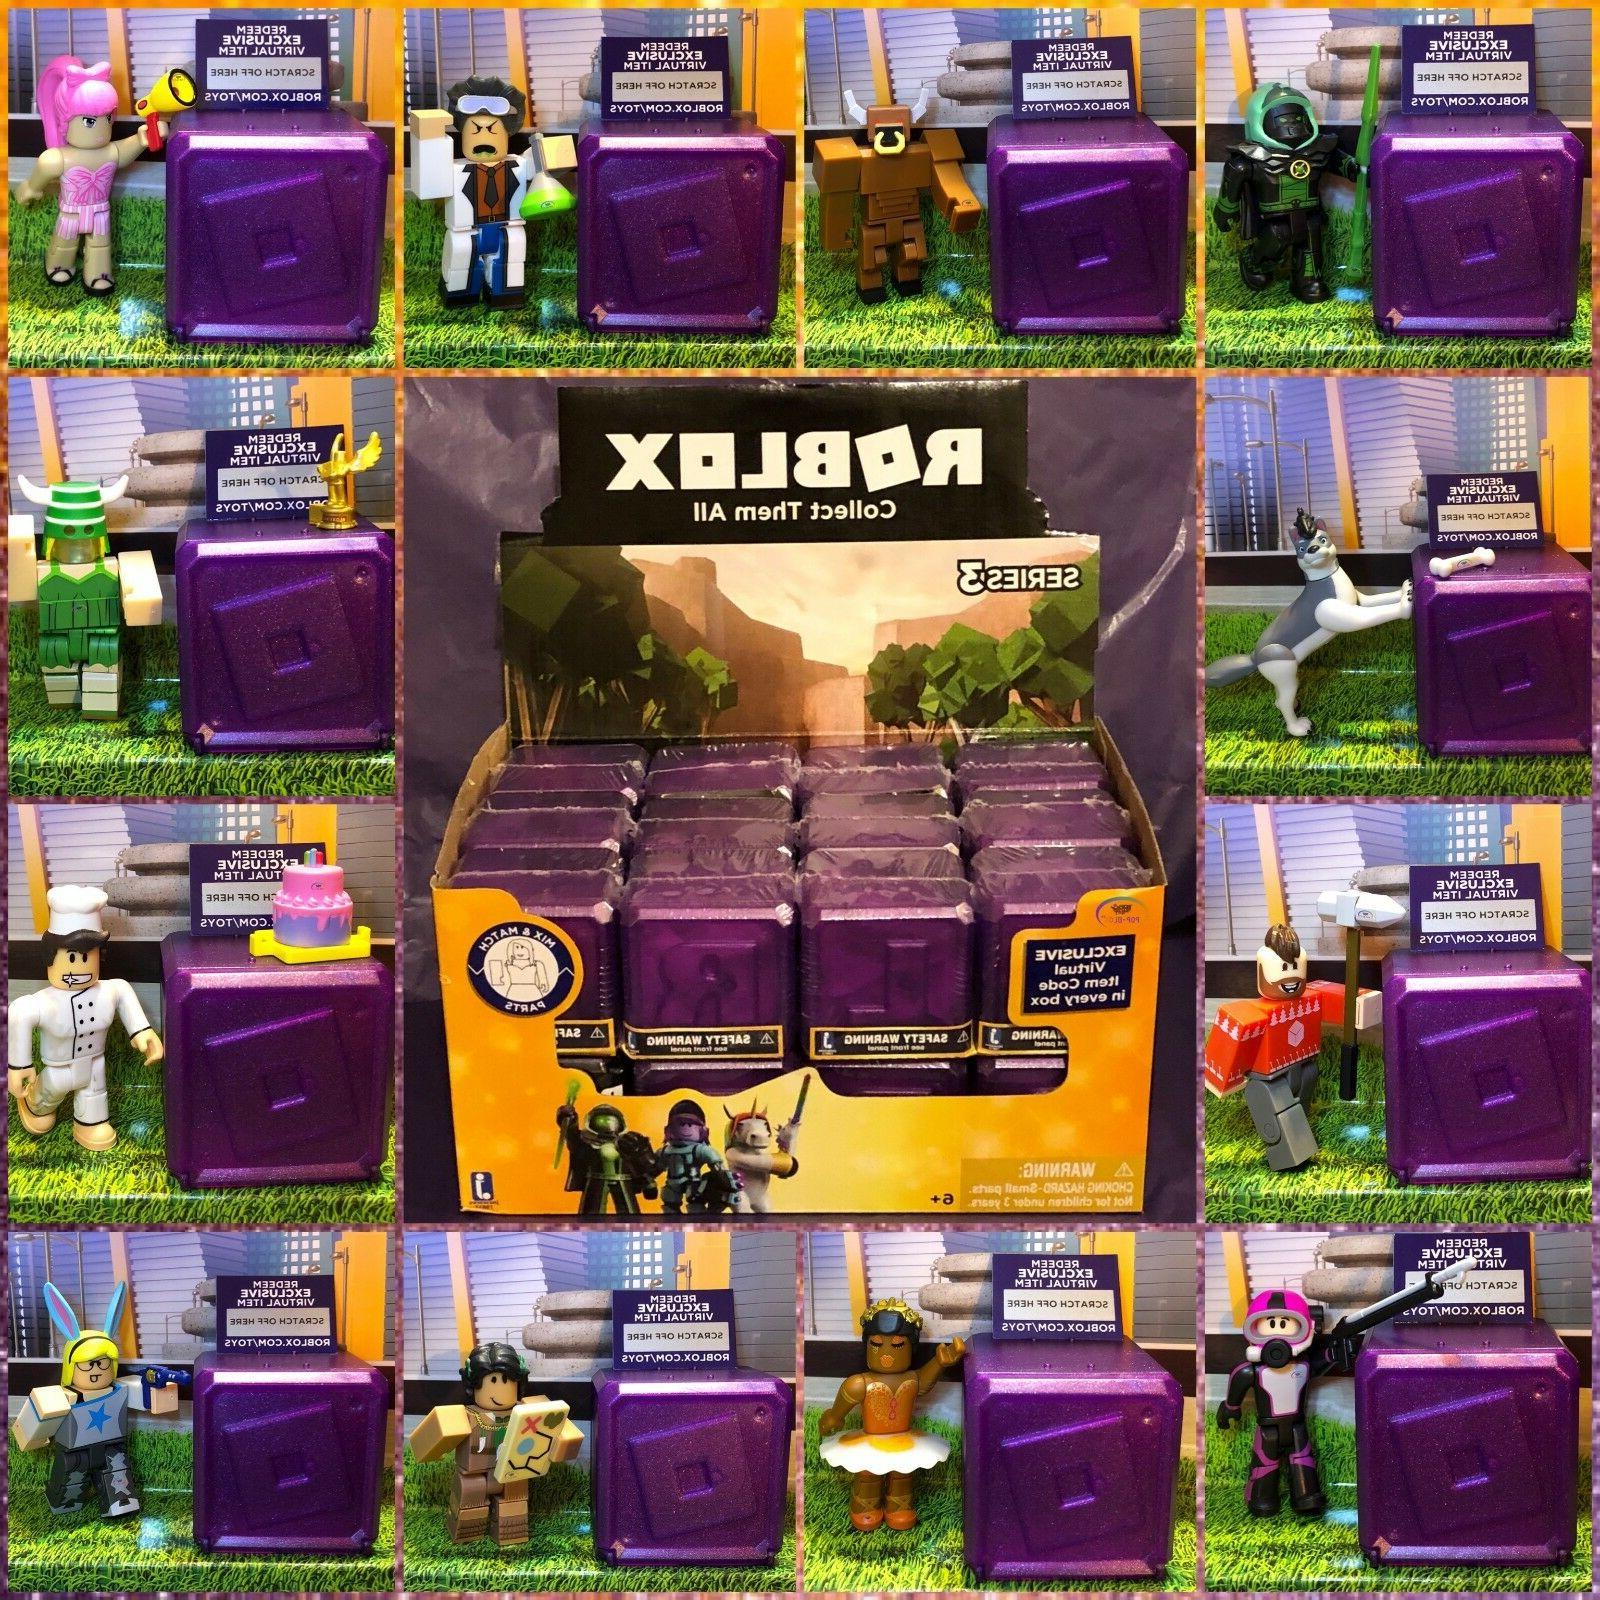 Details About Roblox Celebrity Collection Series 3 Mystery Pack Purple Cube - Roblox Royale High Drama Teacher Celebrity Gold Purple